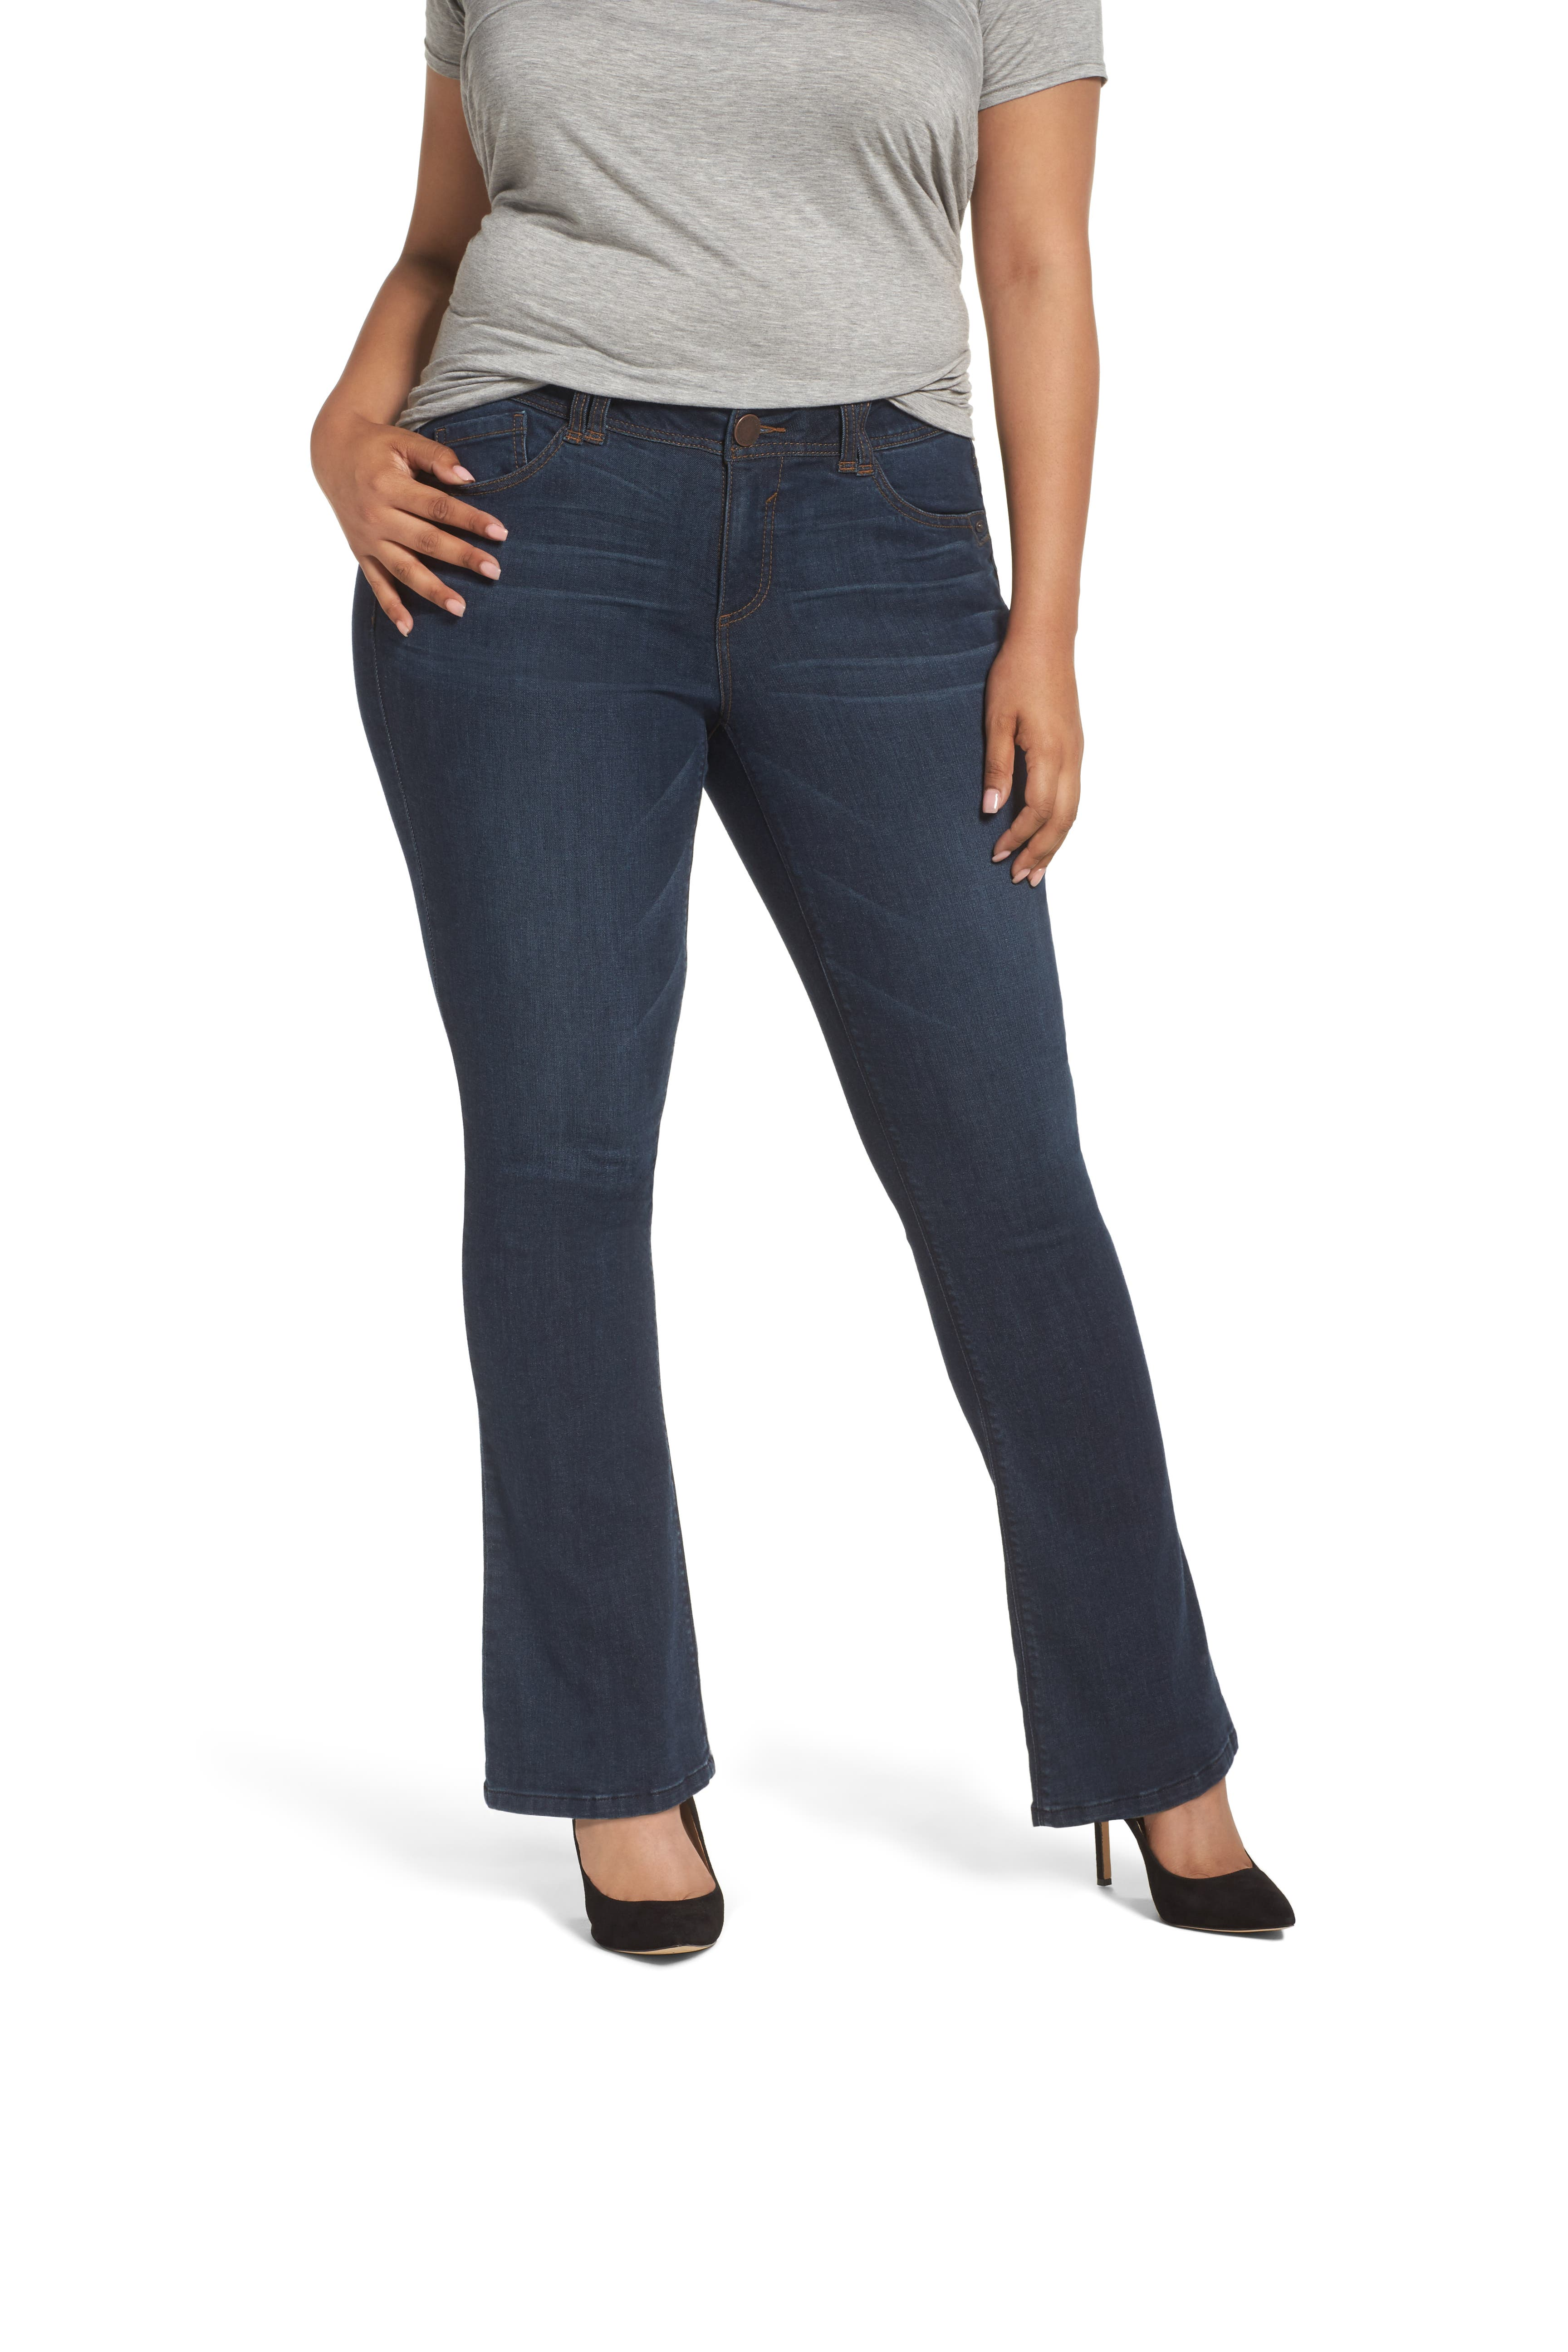 Ab-solution Itty Bitty Bootcut Jeans,                         Main,                         color, 420